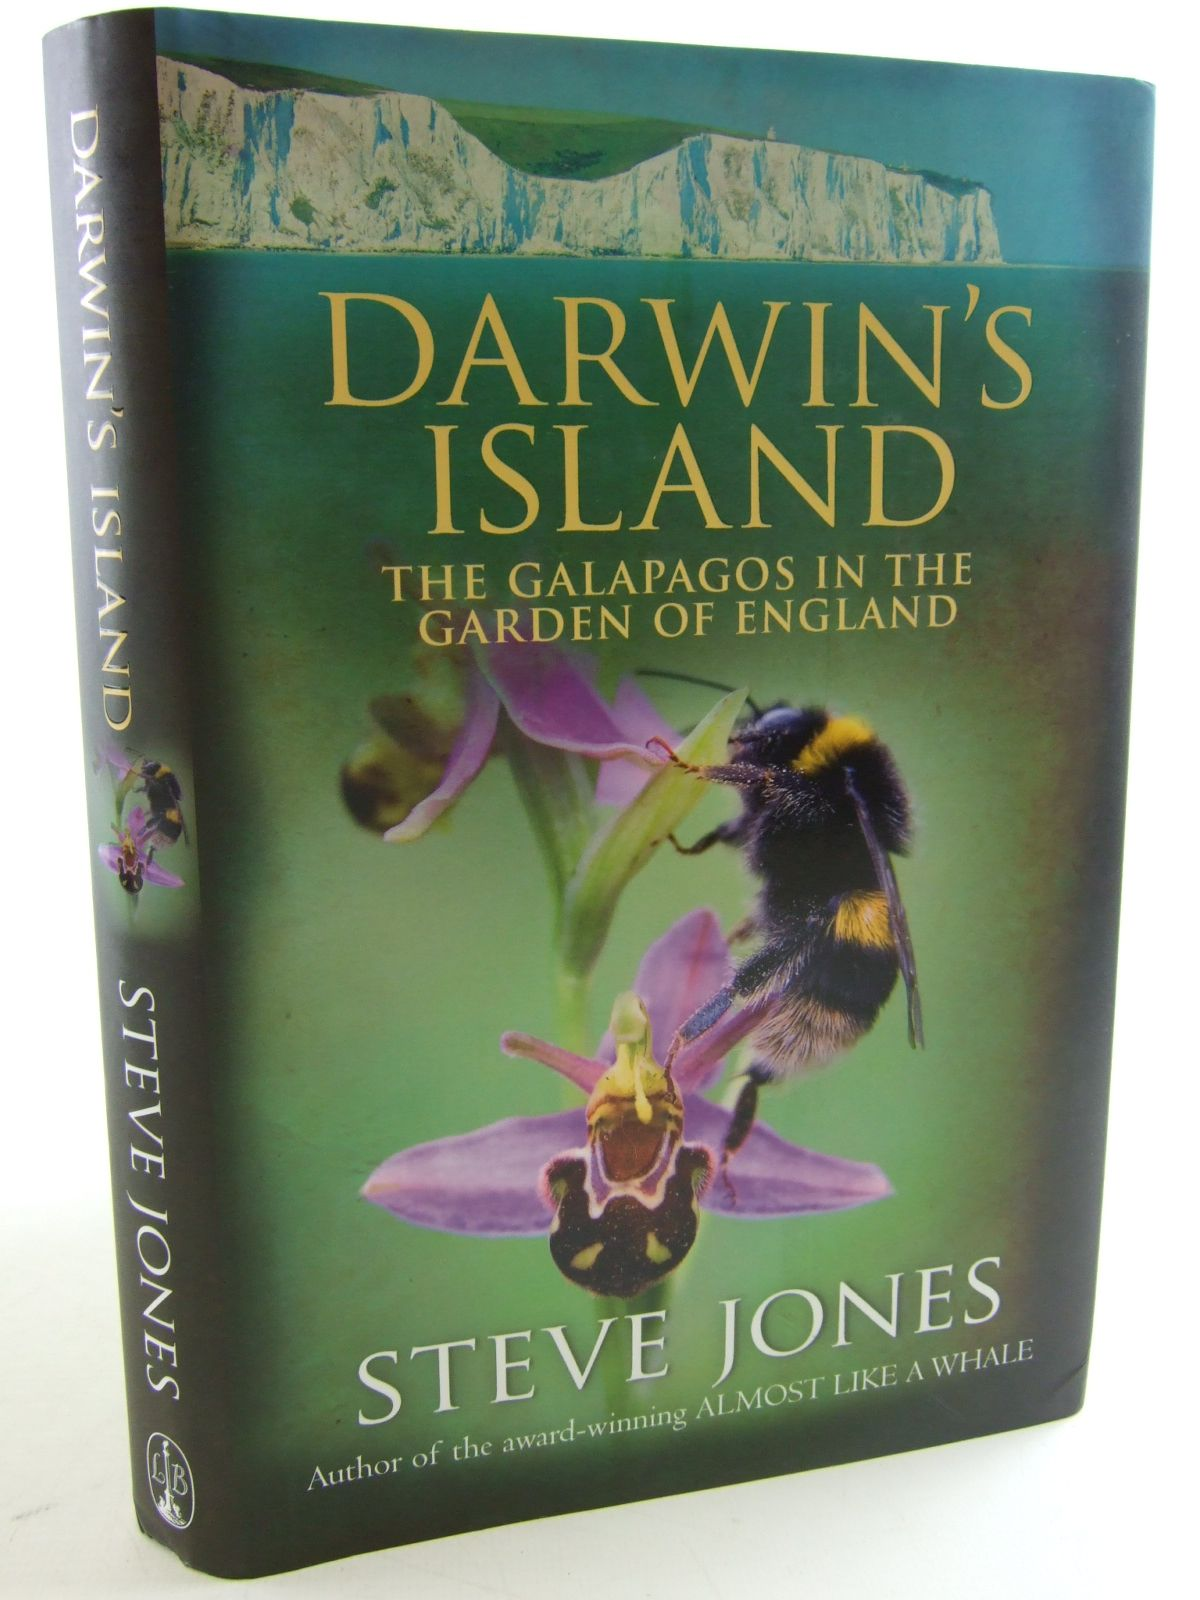 1000 Photo Of DARWINS ISLAND THE GALAPAGOS IN GARDEN OF ENGLAND Written By Jones Steve